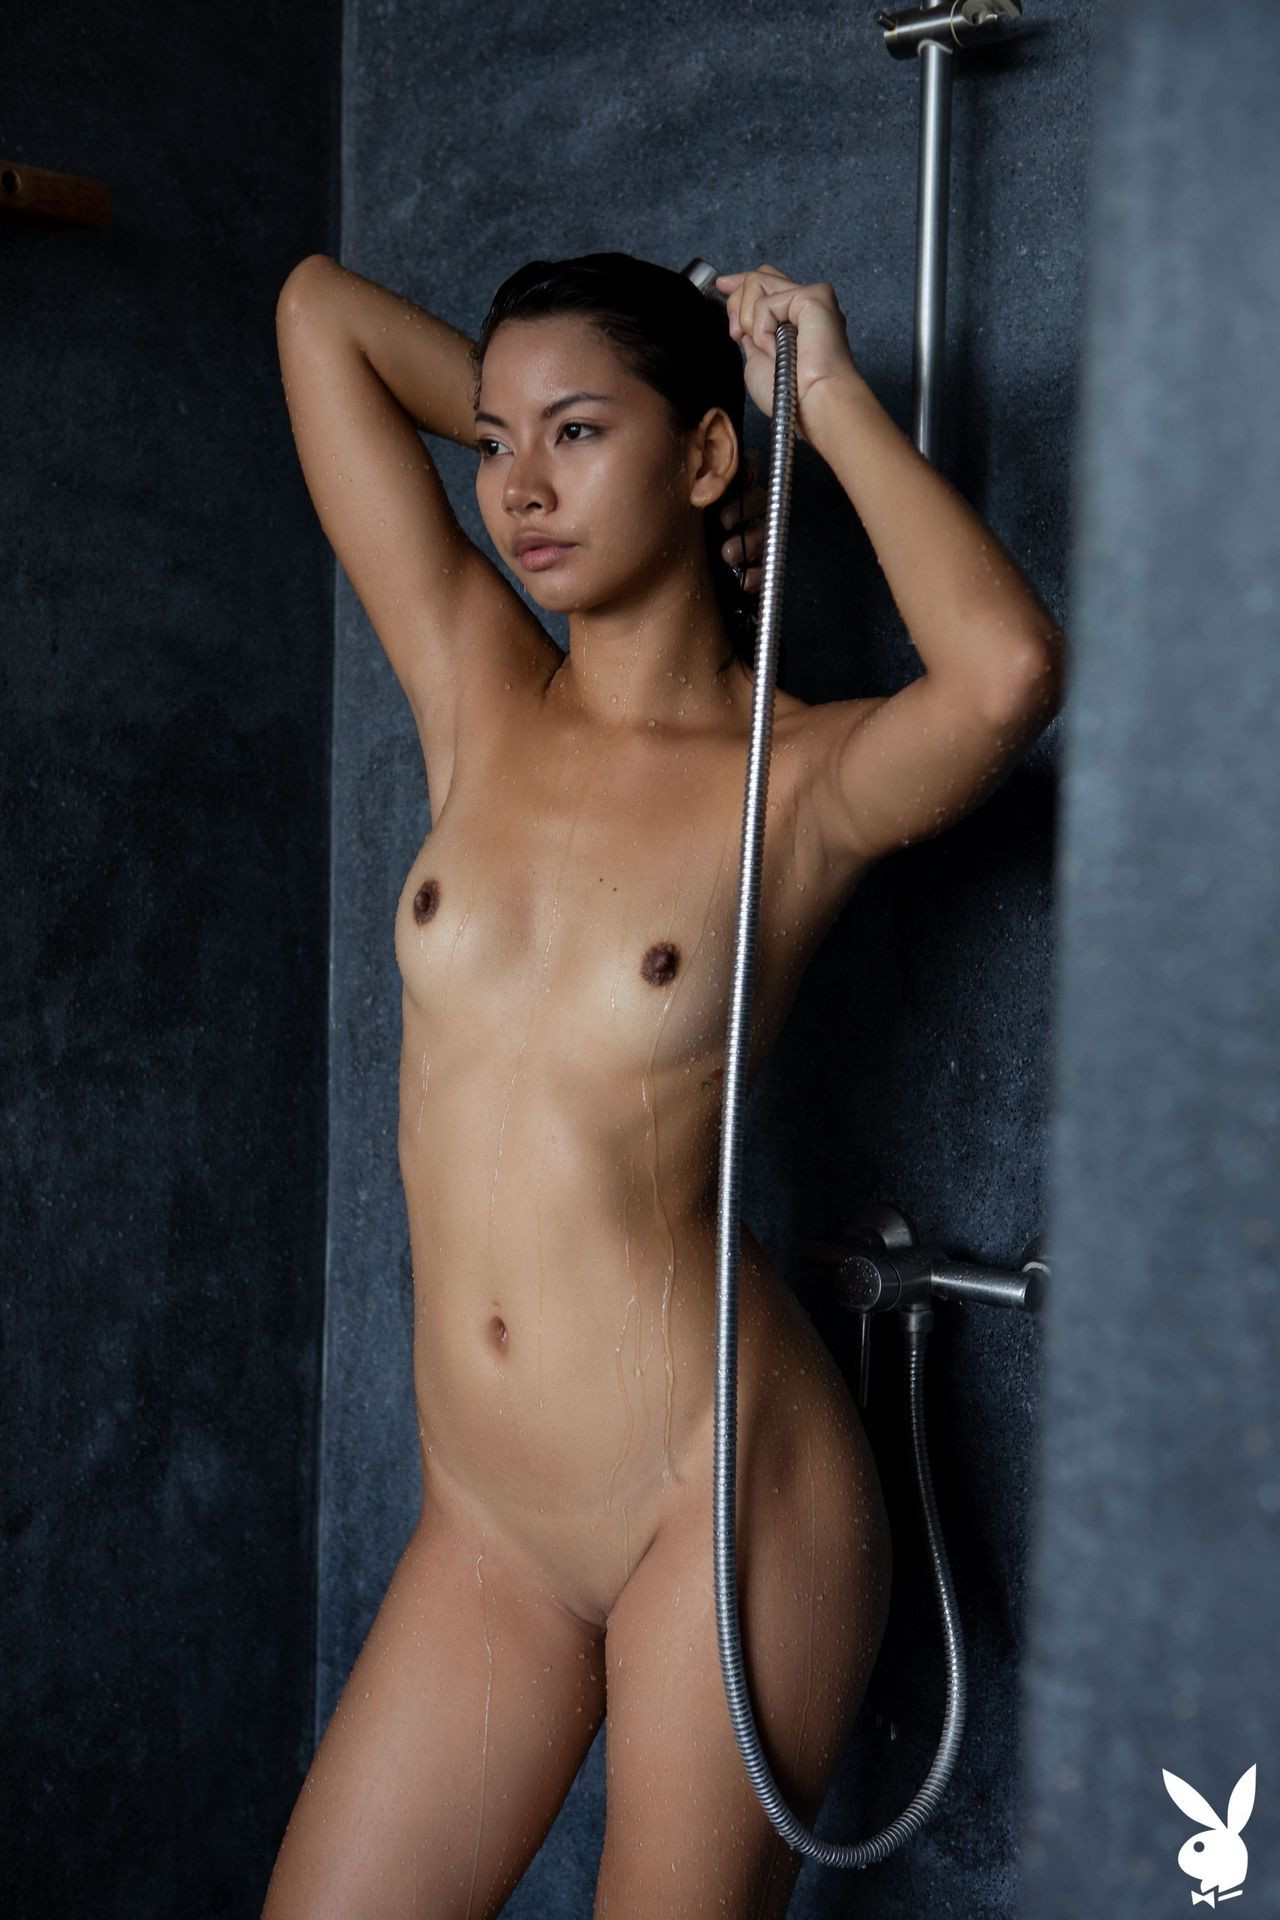 Cara Pin Nude Soft Shower thefappening.nu 24